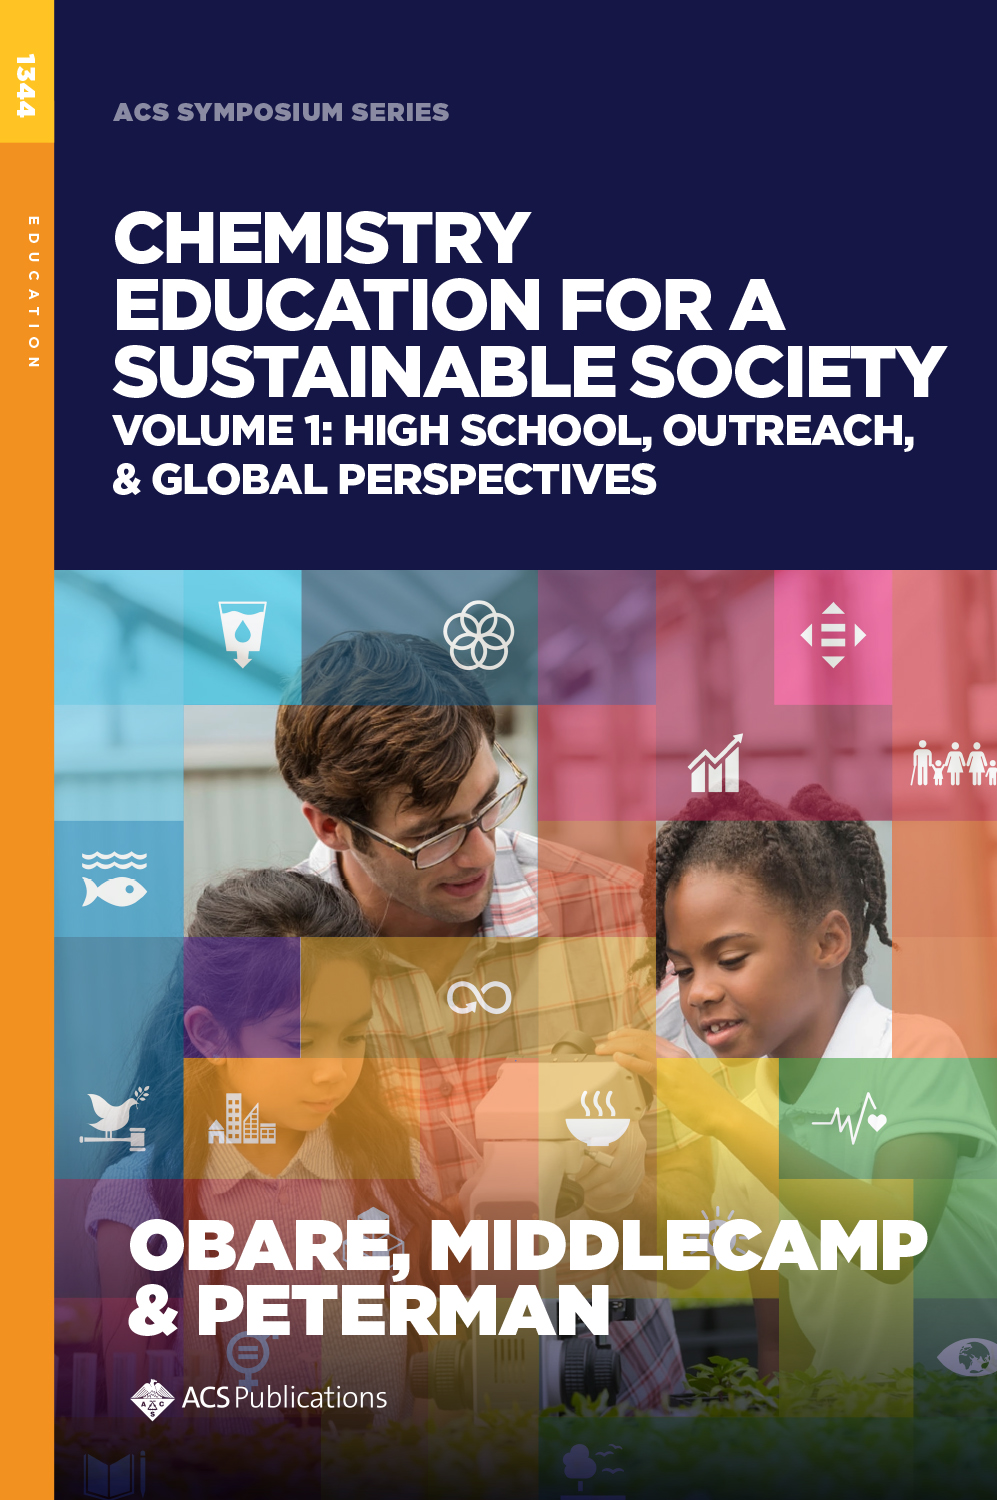 Chemistry Education for a Sustainable Society Volume 1: High School, Outreach, & Global Perspectives